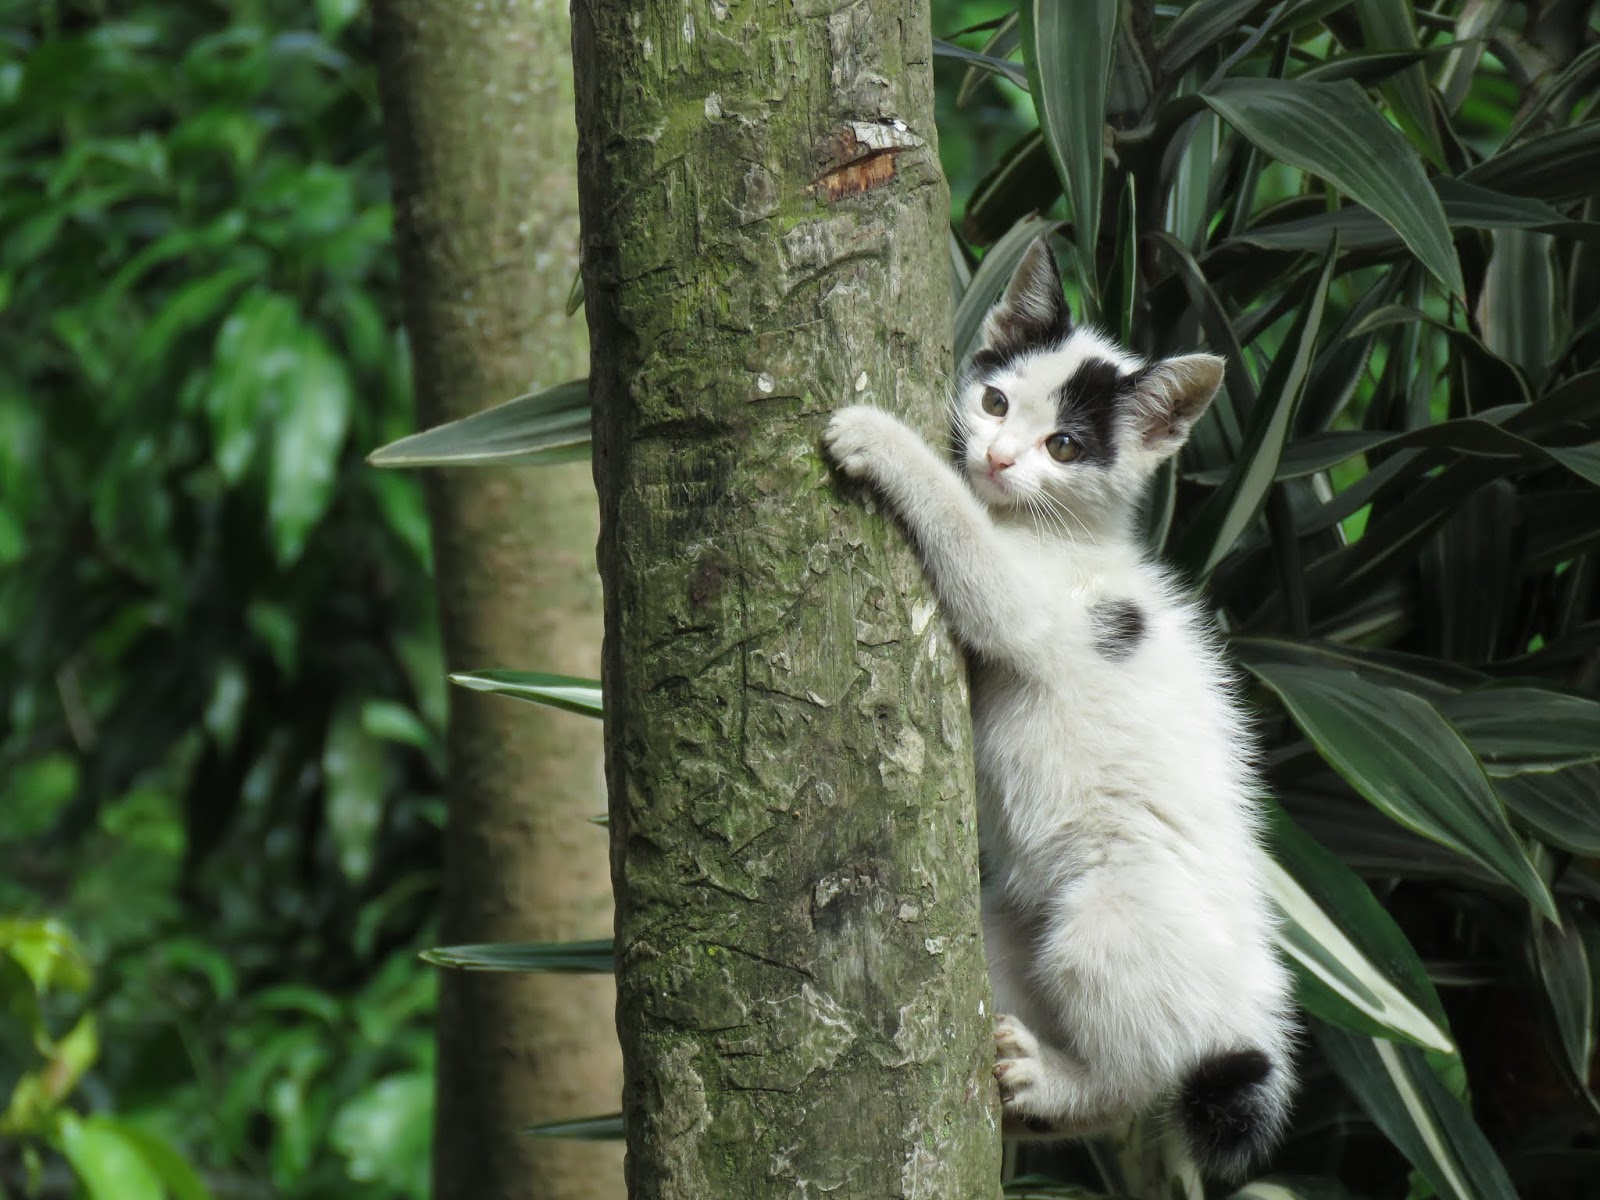 Cat clinging on tree trunk photo,cat images